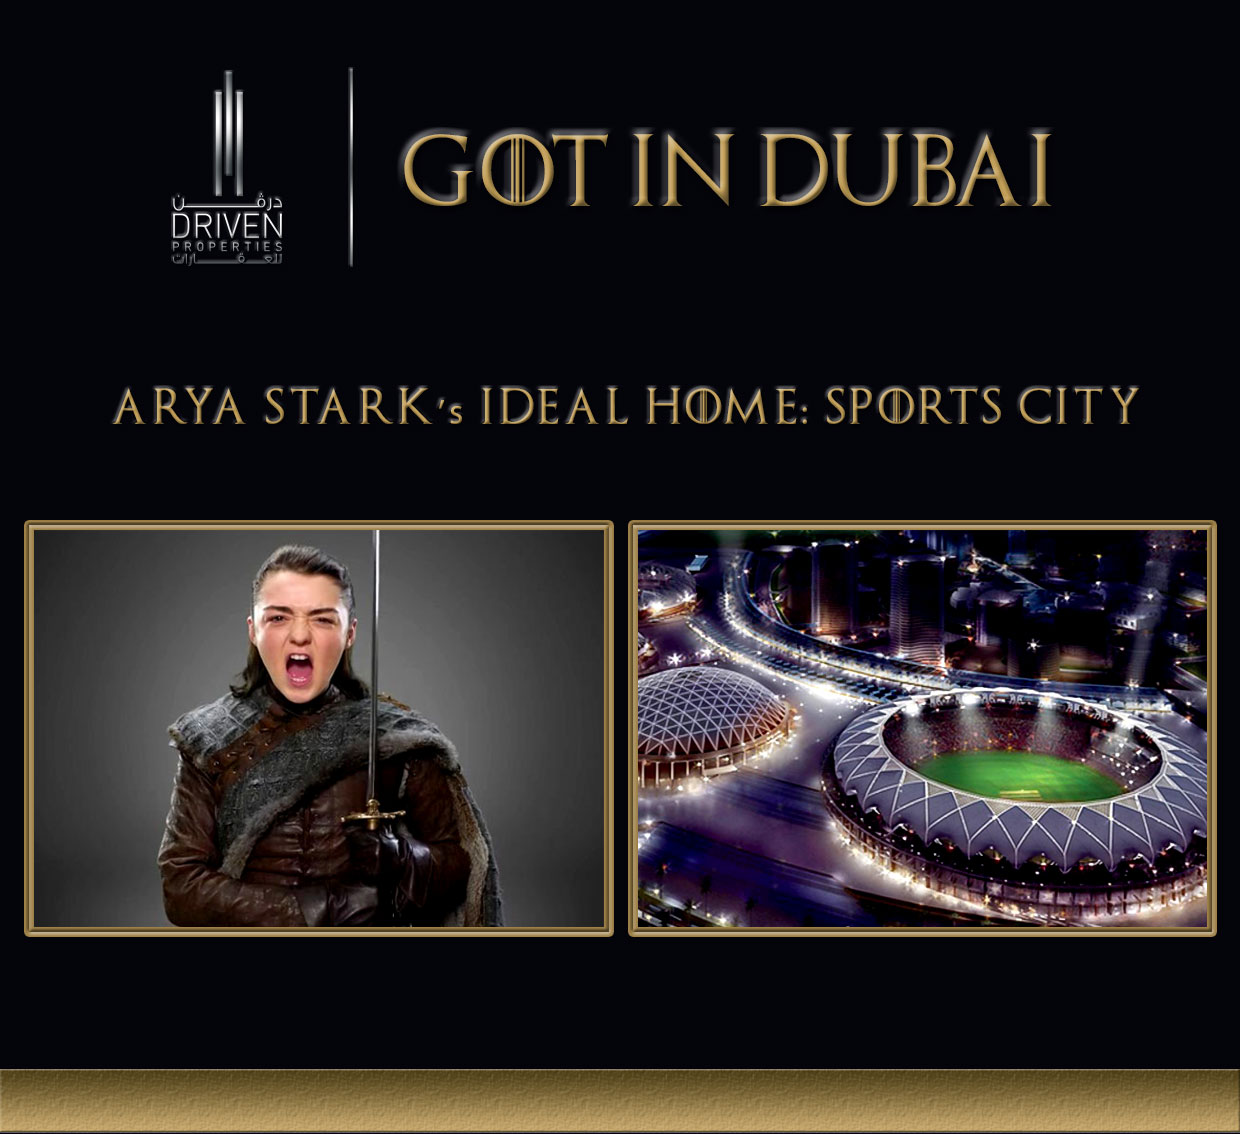 If Characters From Game of Thrones Lived in Dubai